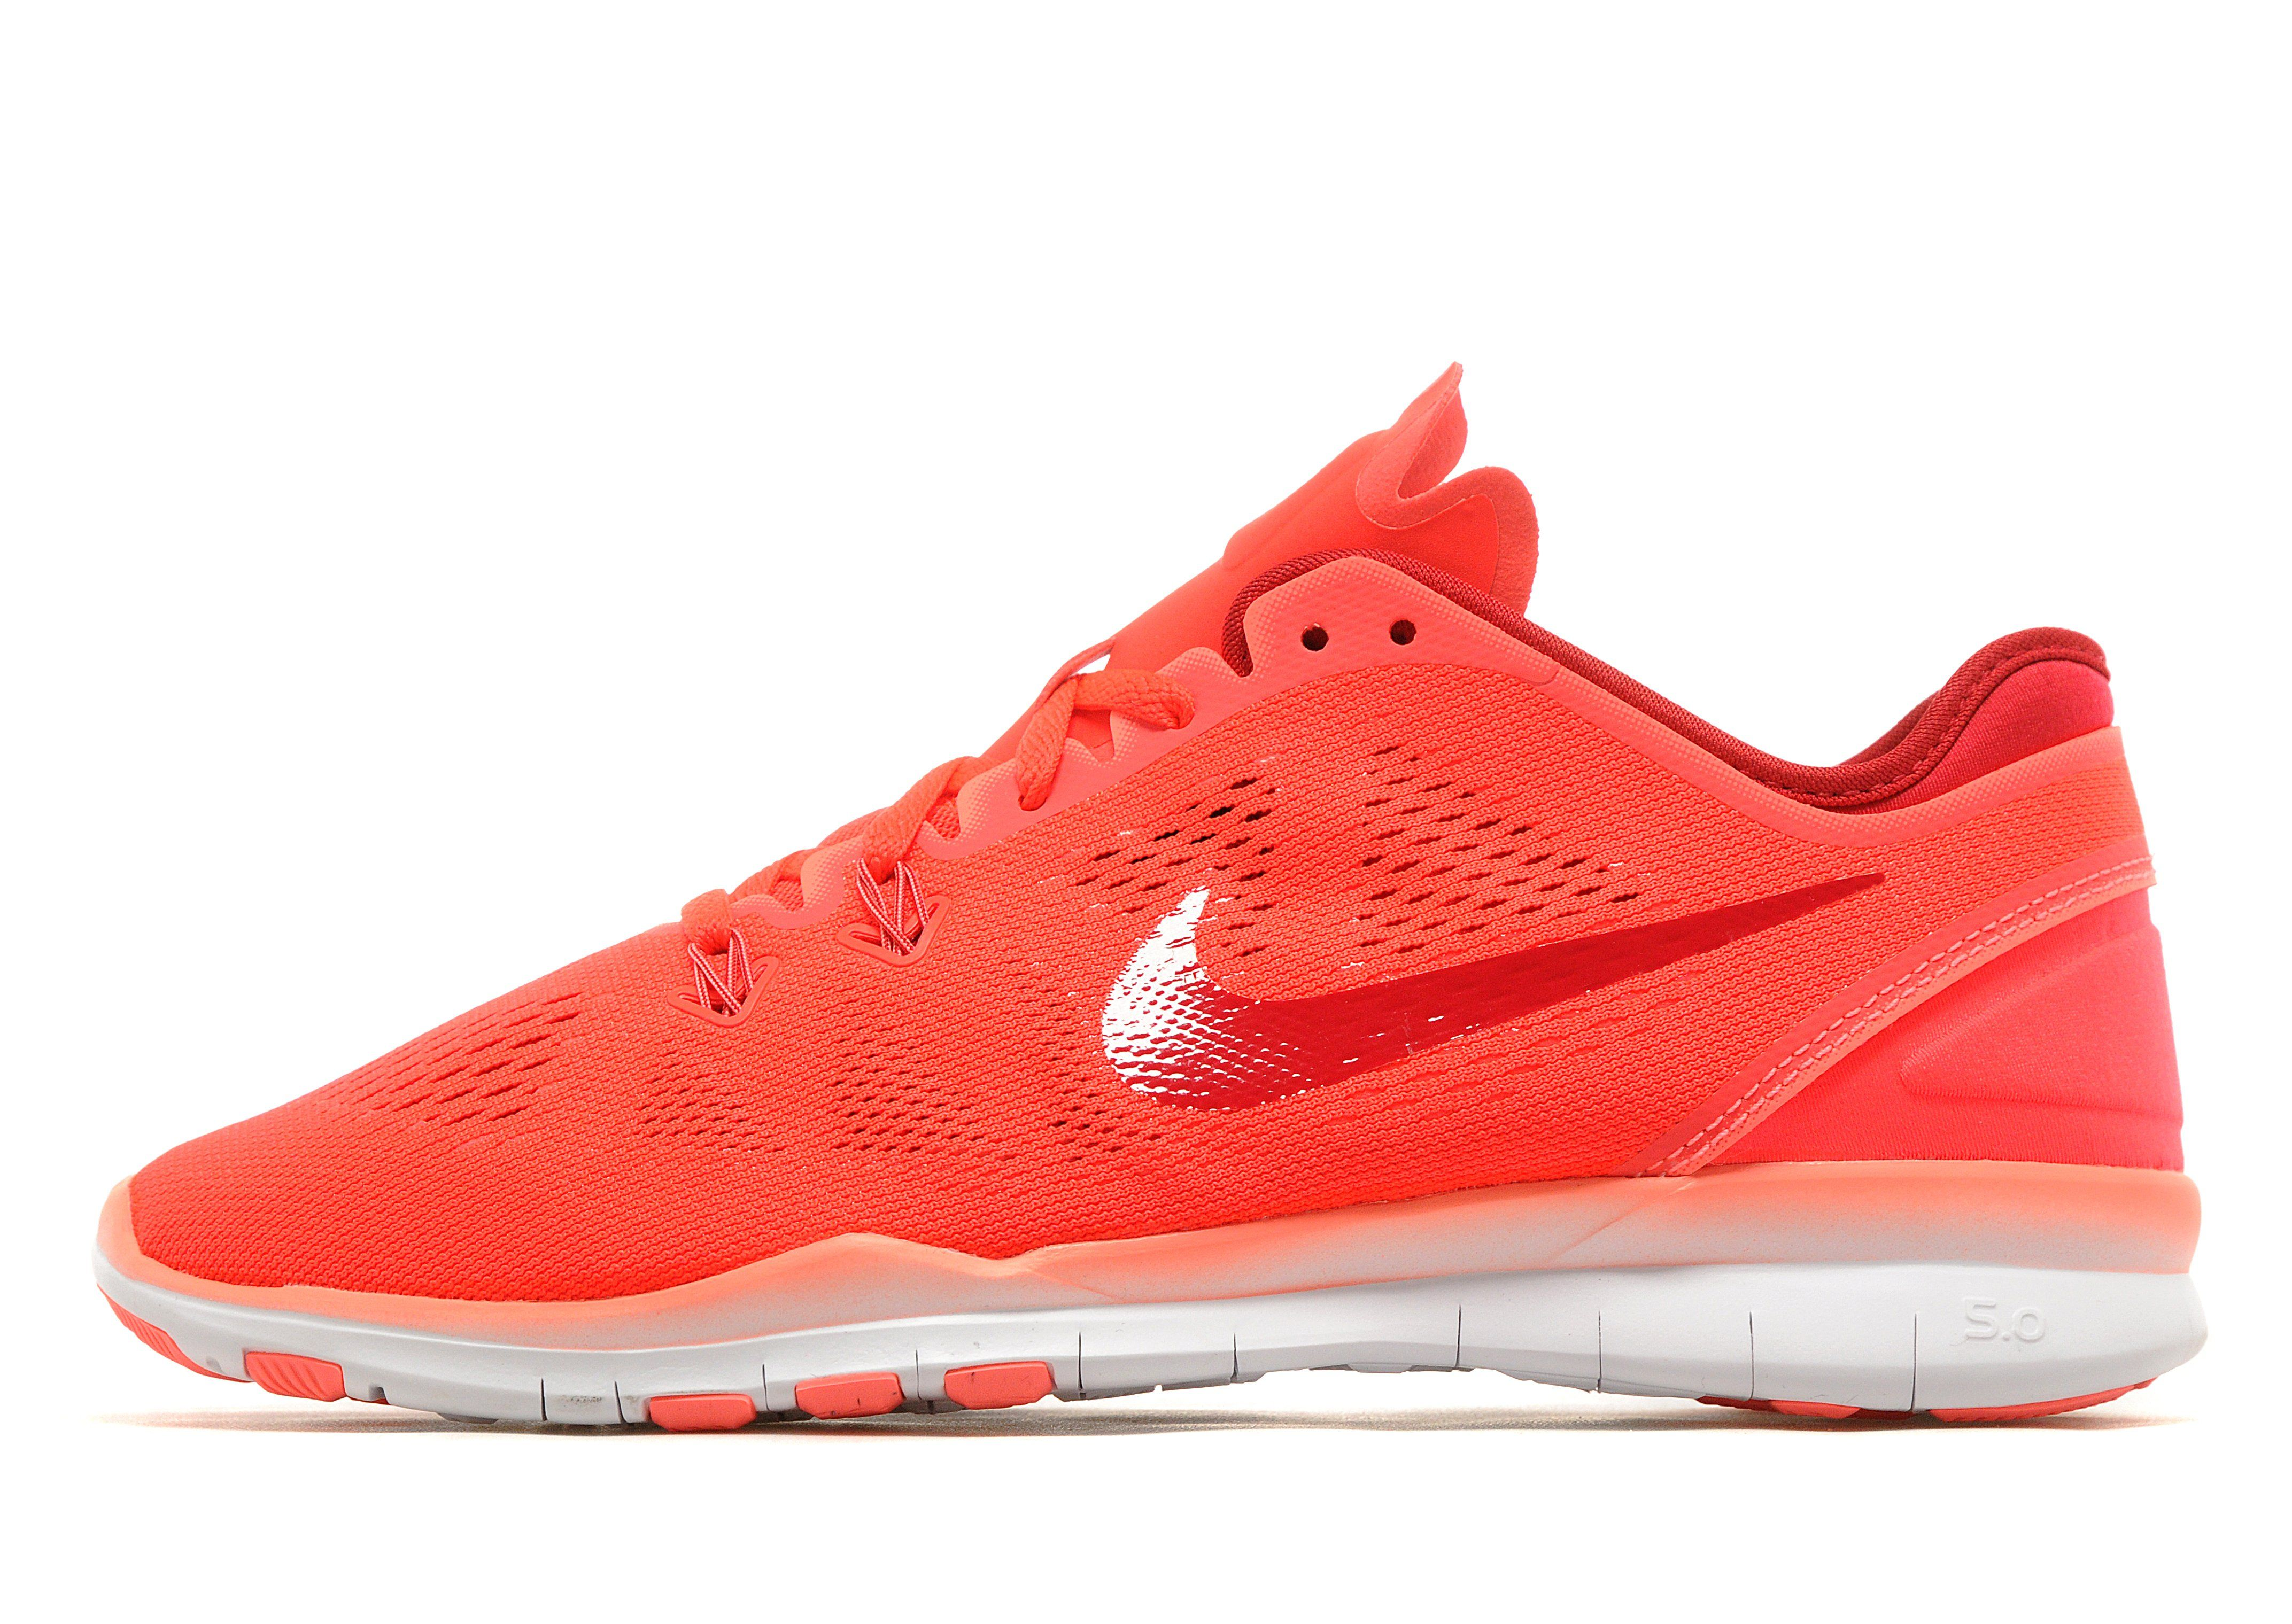 separation shoes 8ce2a 61a76 nike free trainer 3.0 jd sports